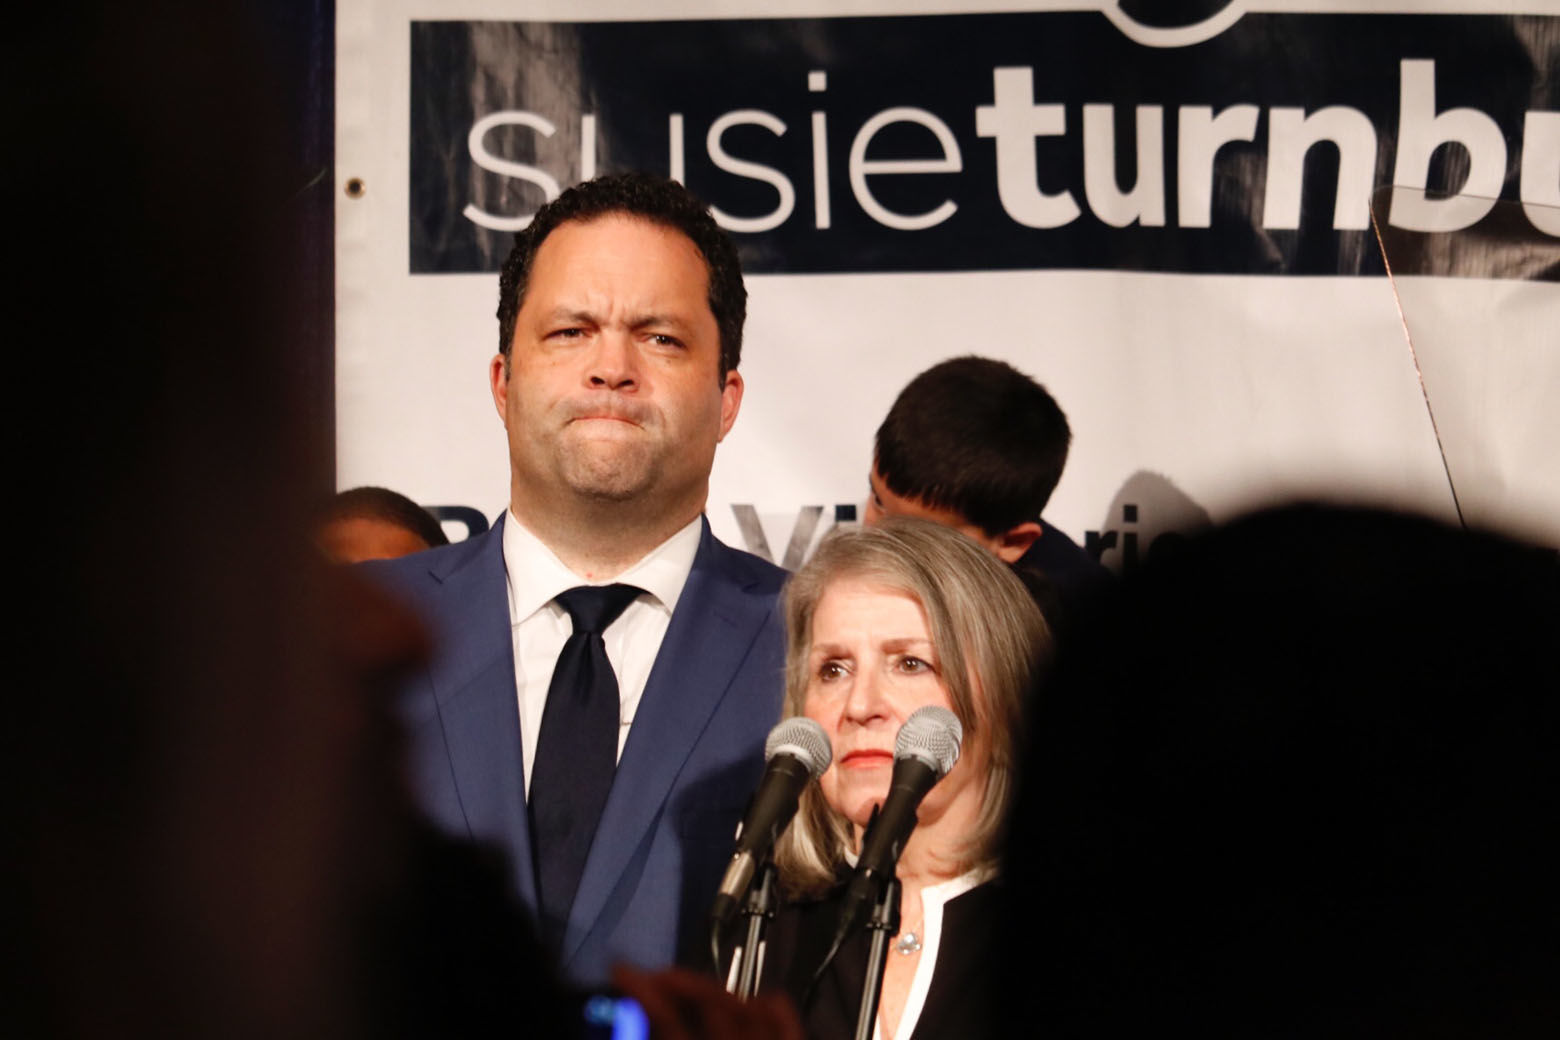 Ben Jealous and Susie Turnbull, his running mate, prepare to address supporters in Baltimore.  (WTOP/Ben Jealous)